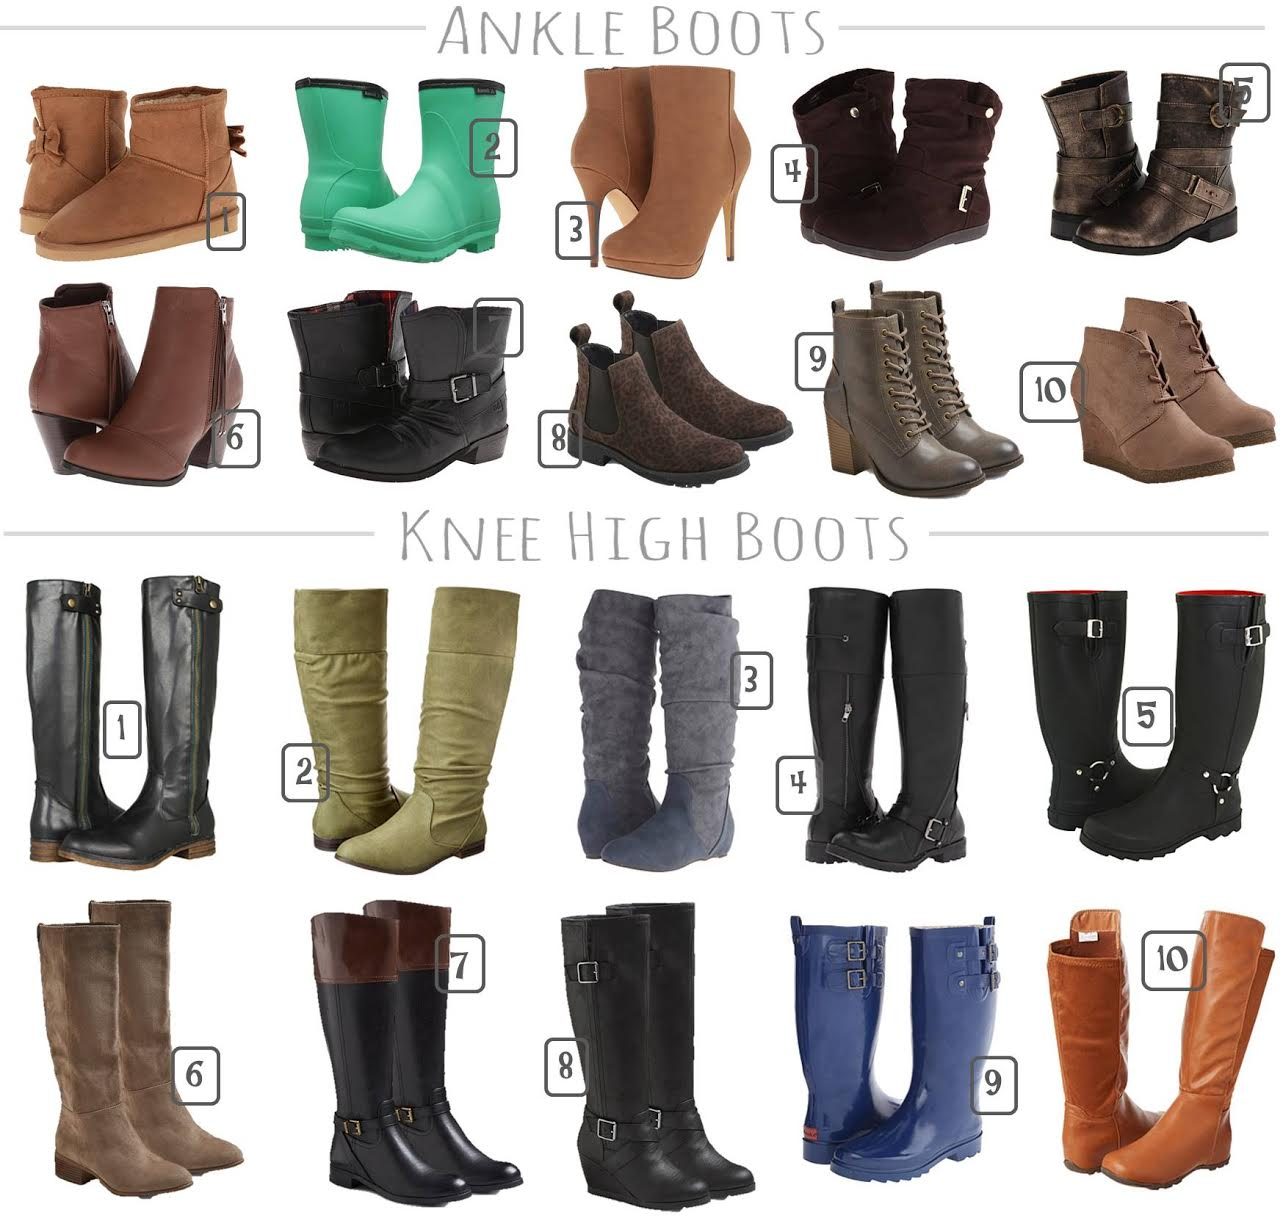 20 Fall Boots Under $35 from Target & 6pm